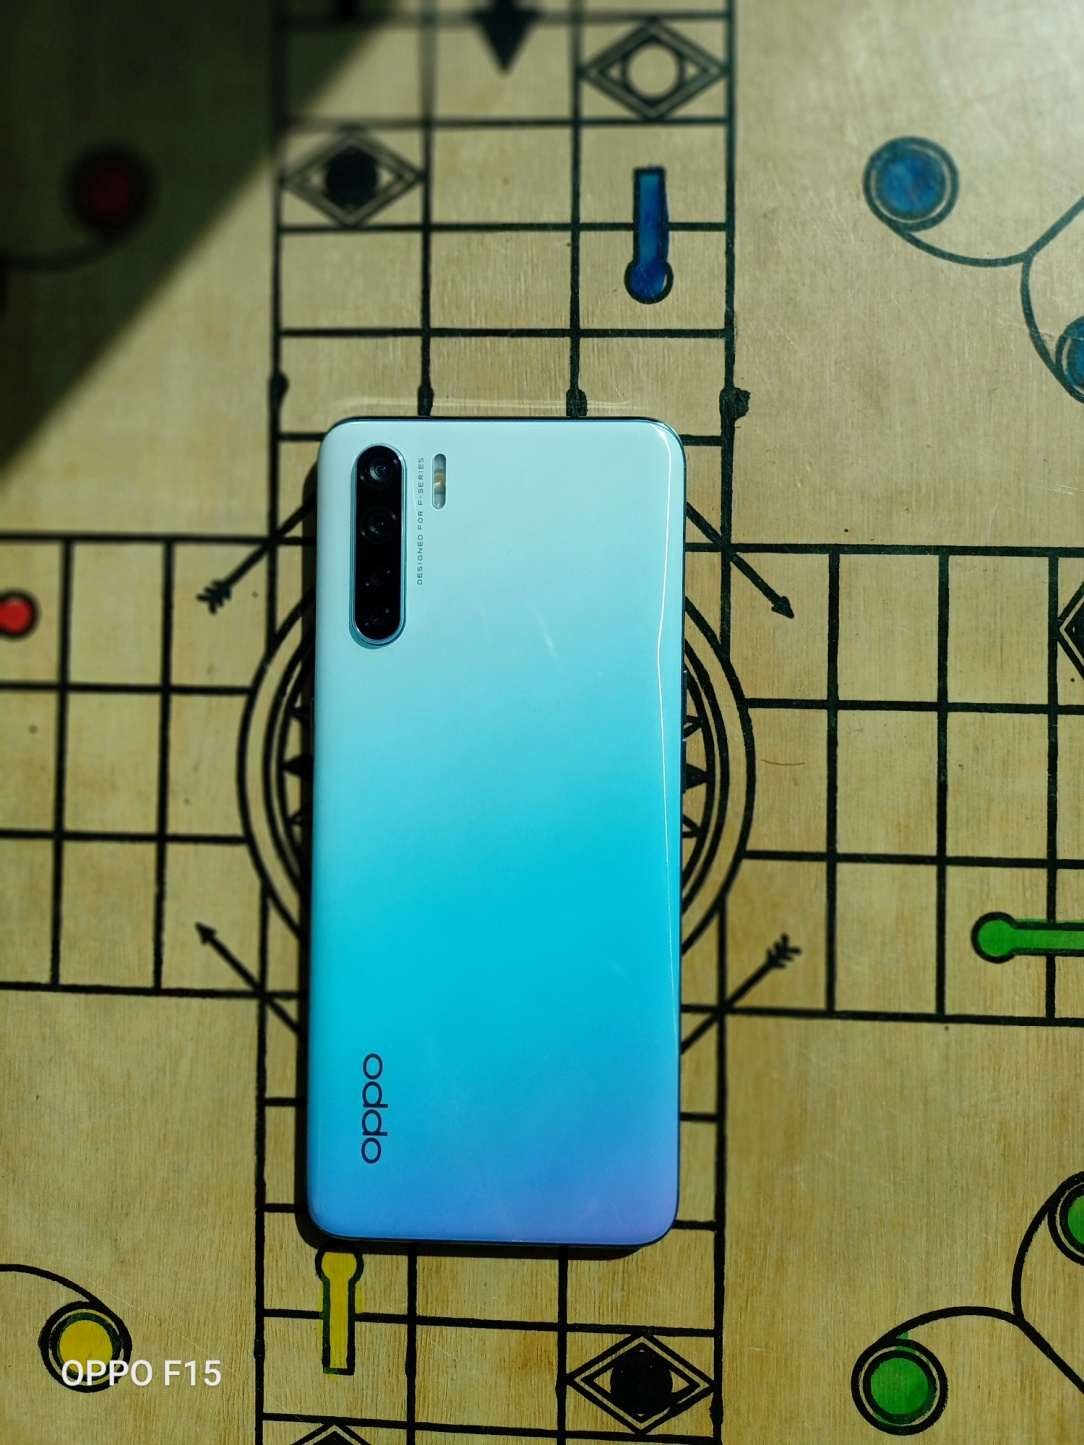 OPPO F15: A brilliantly designed Smartphone Under Rs. 20,000